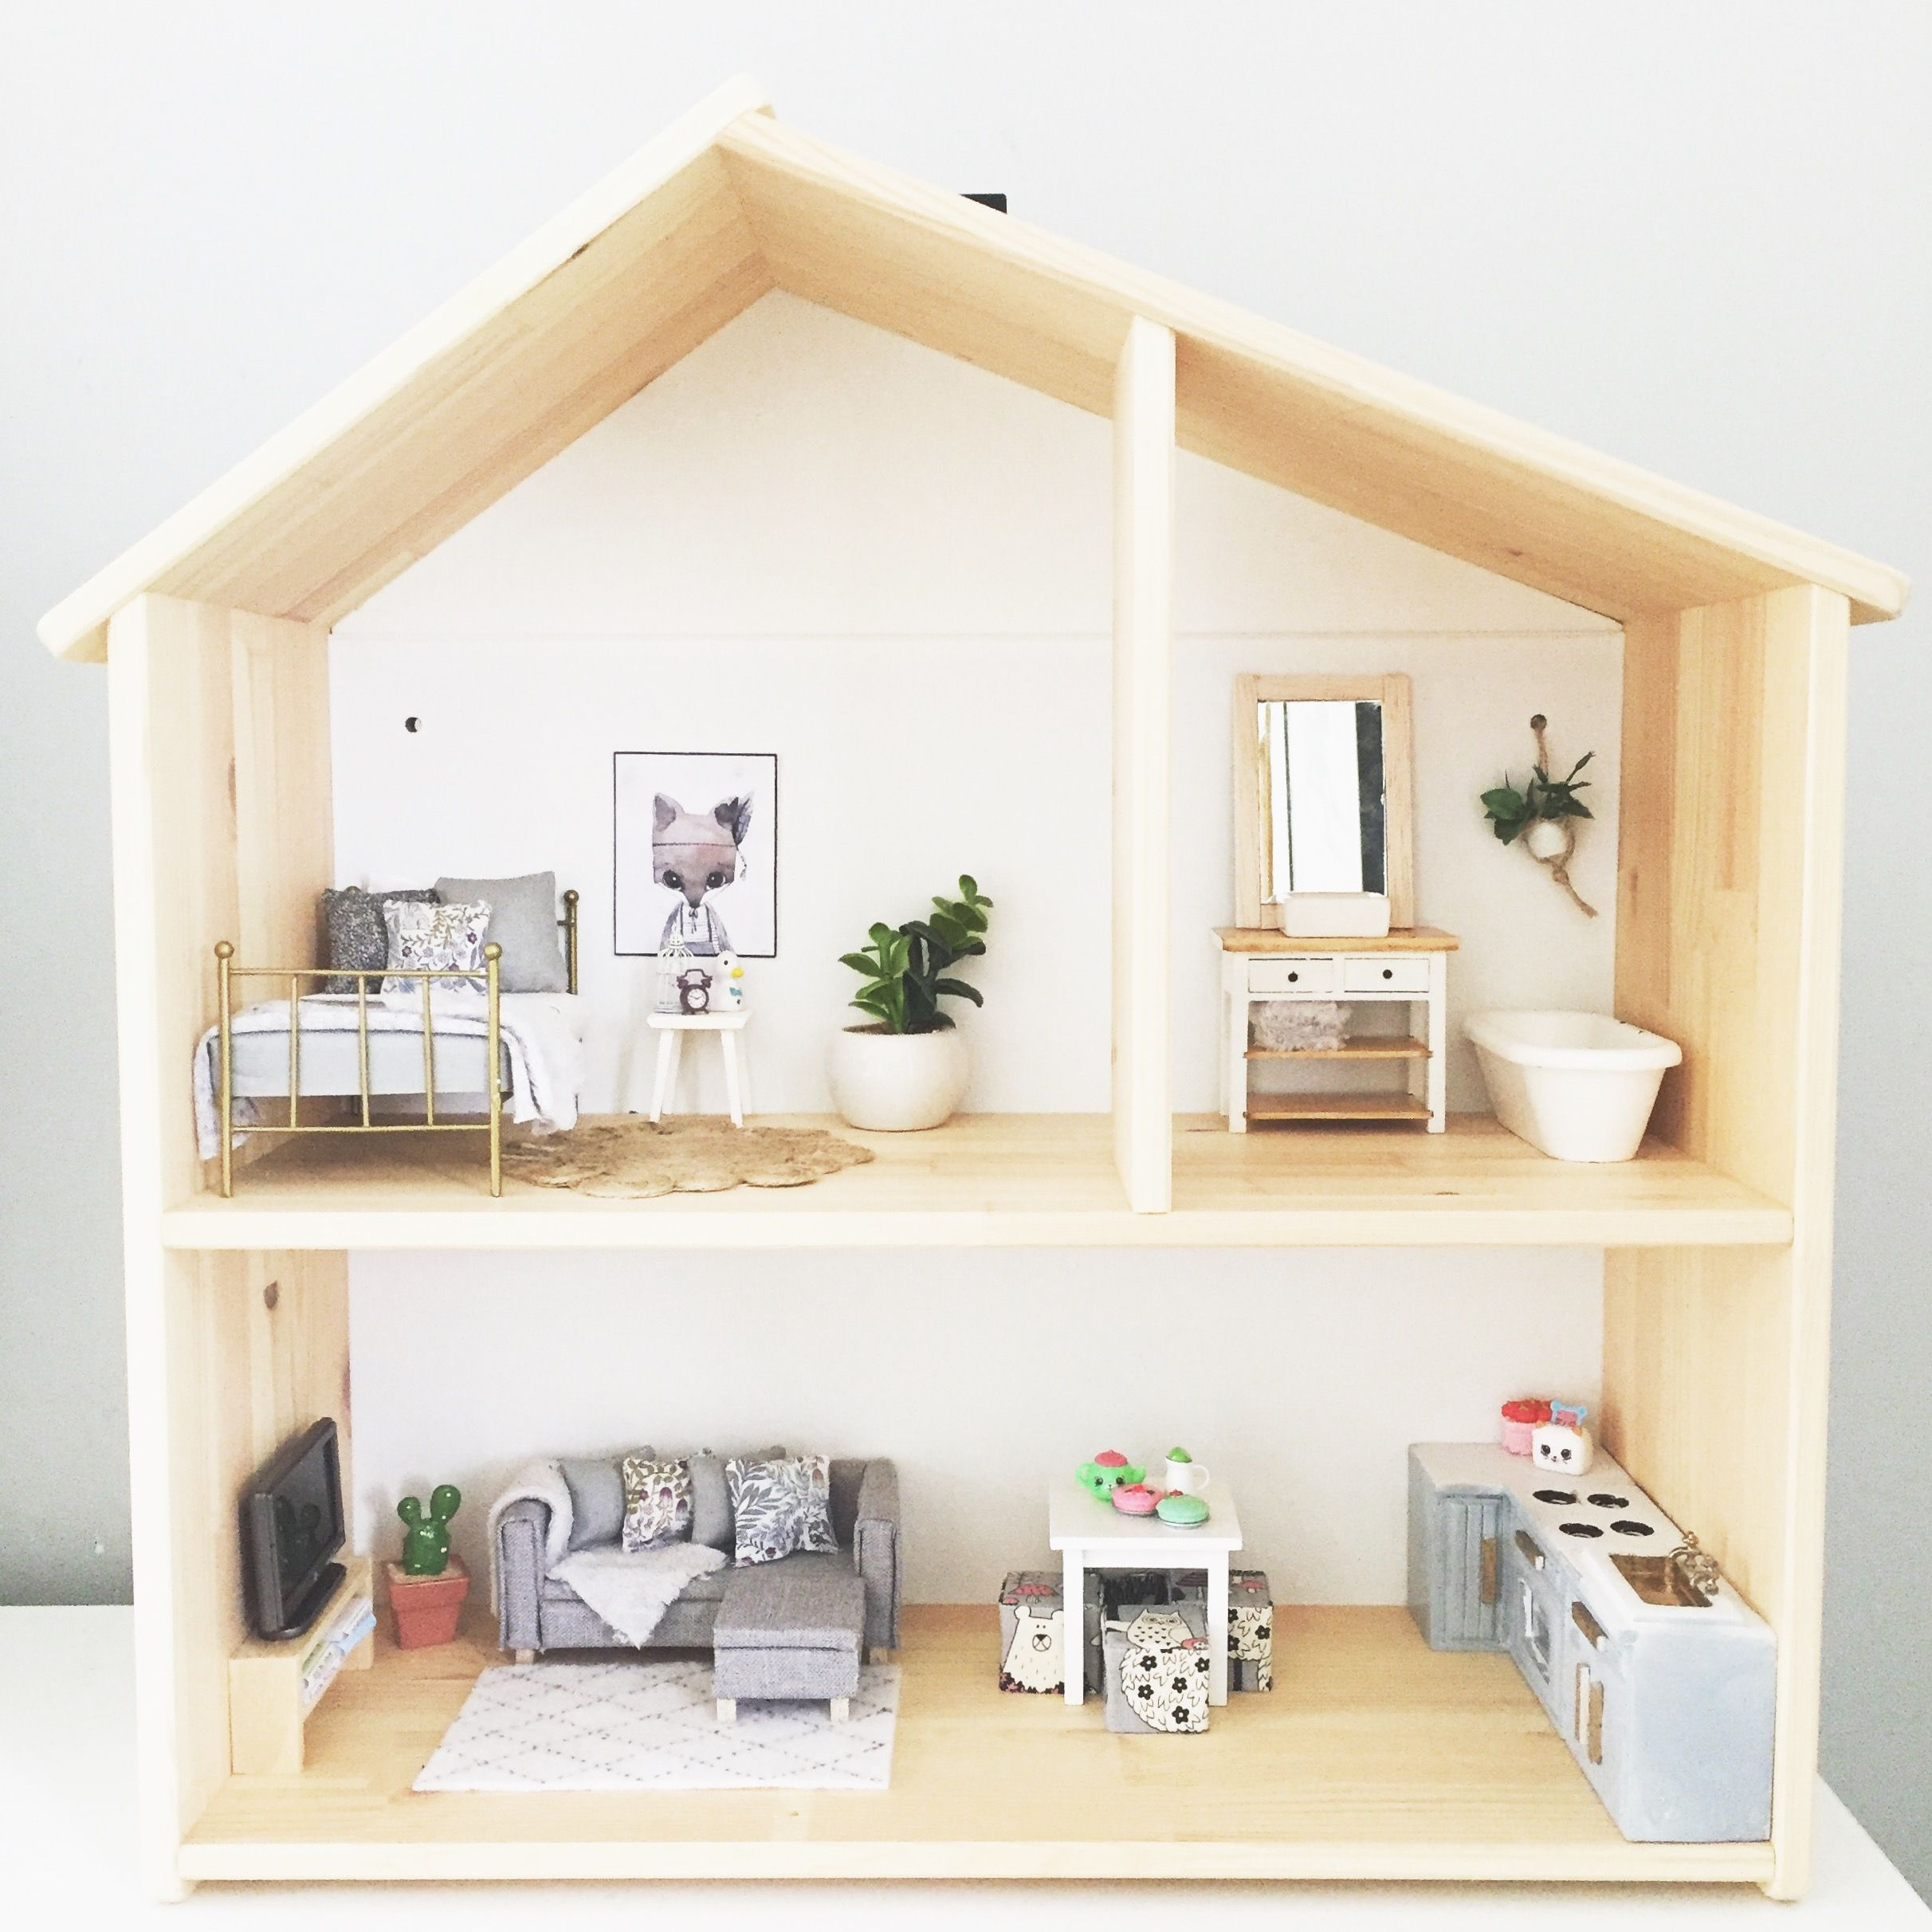 Ikea Flisat Modern Dolls House Renovation In 1 12 Scale